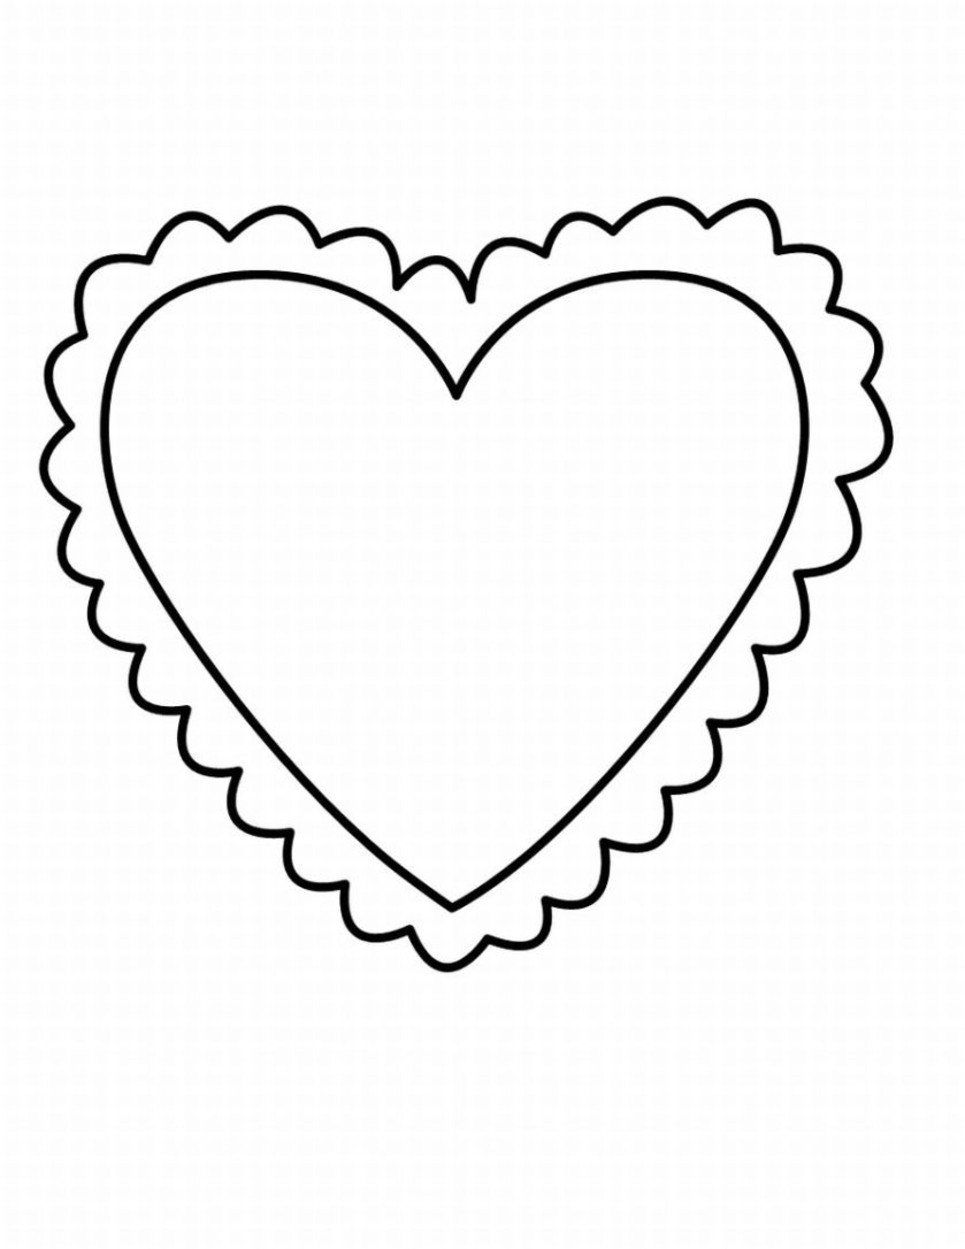 free printable heart coloring pages for kids coloring pages hearts free printable coloring pages for printable coloring for heart pages free kids